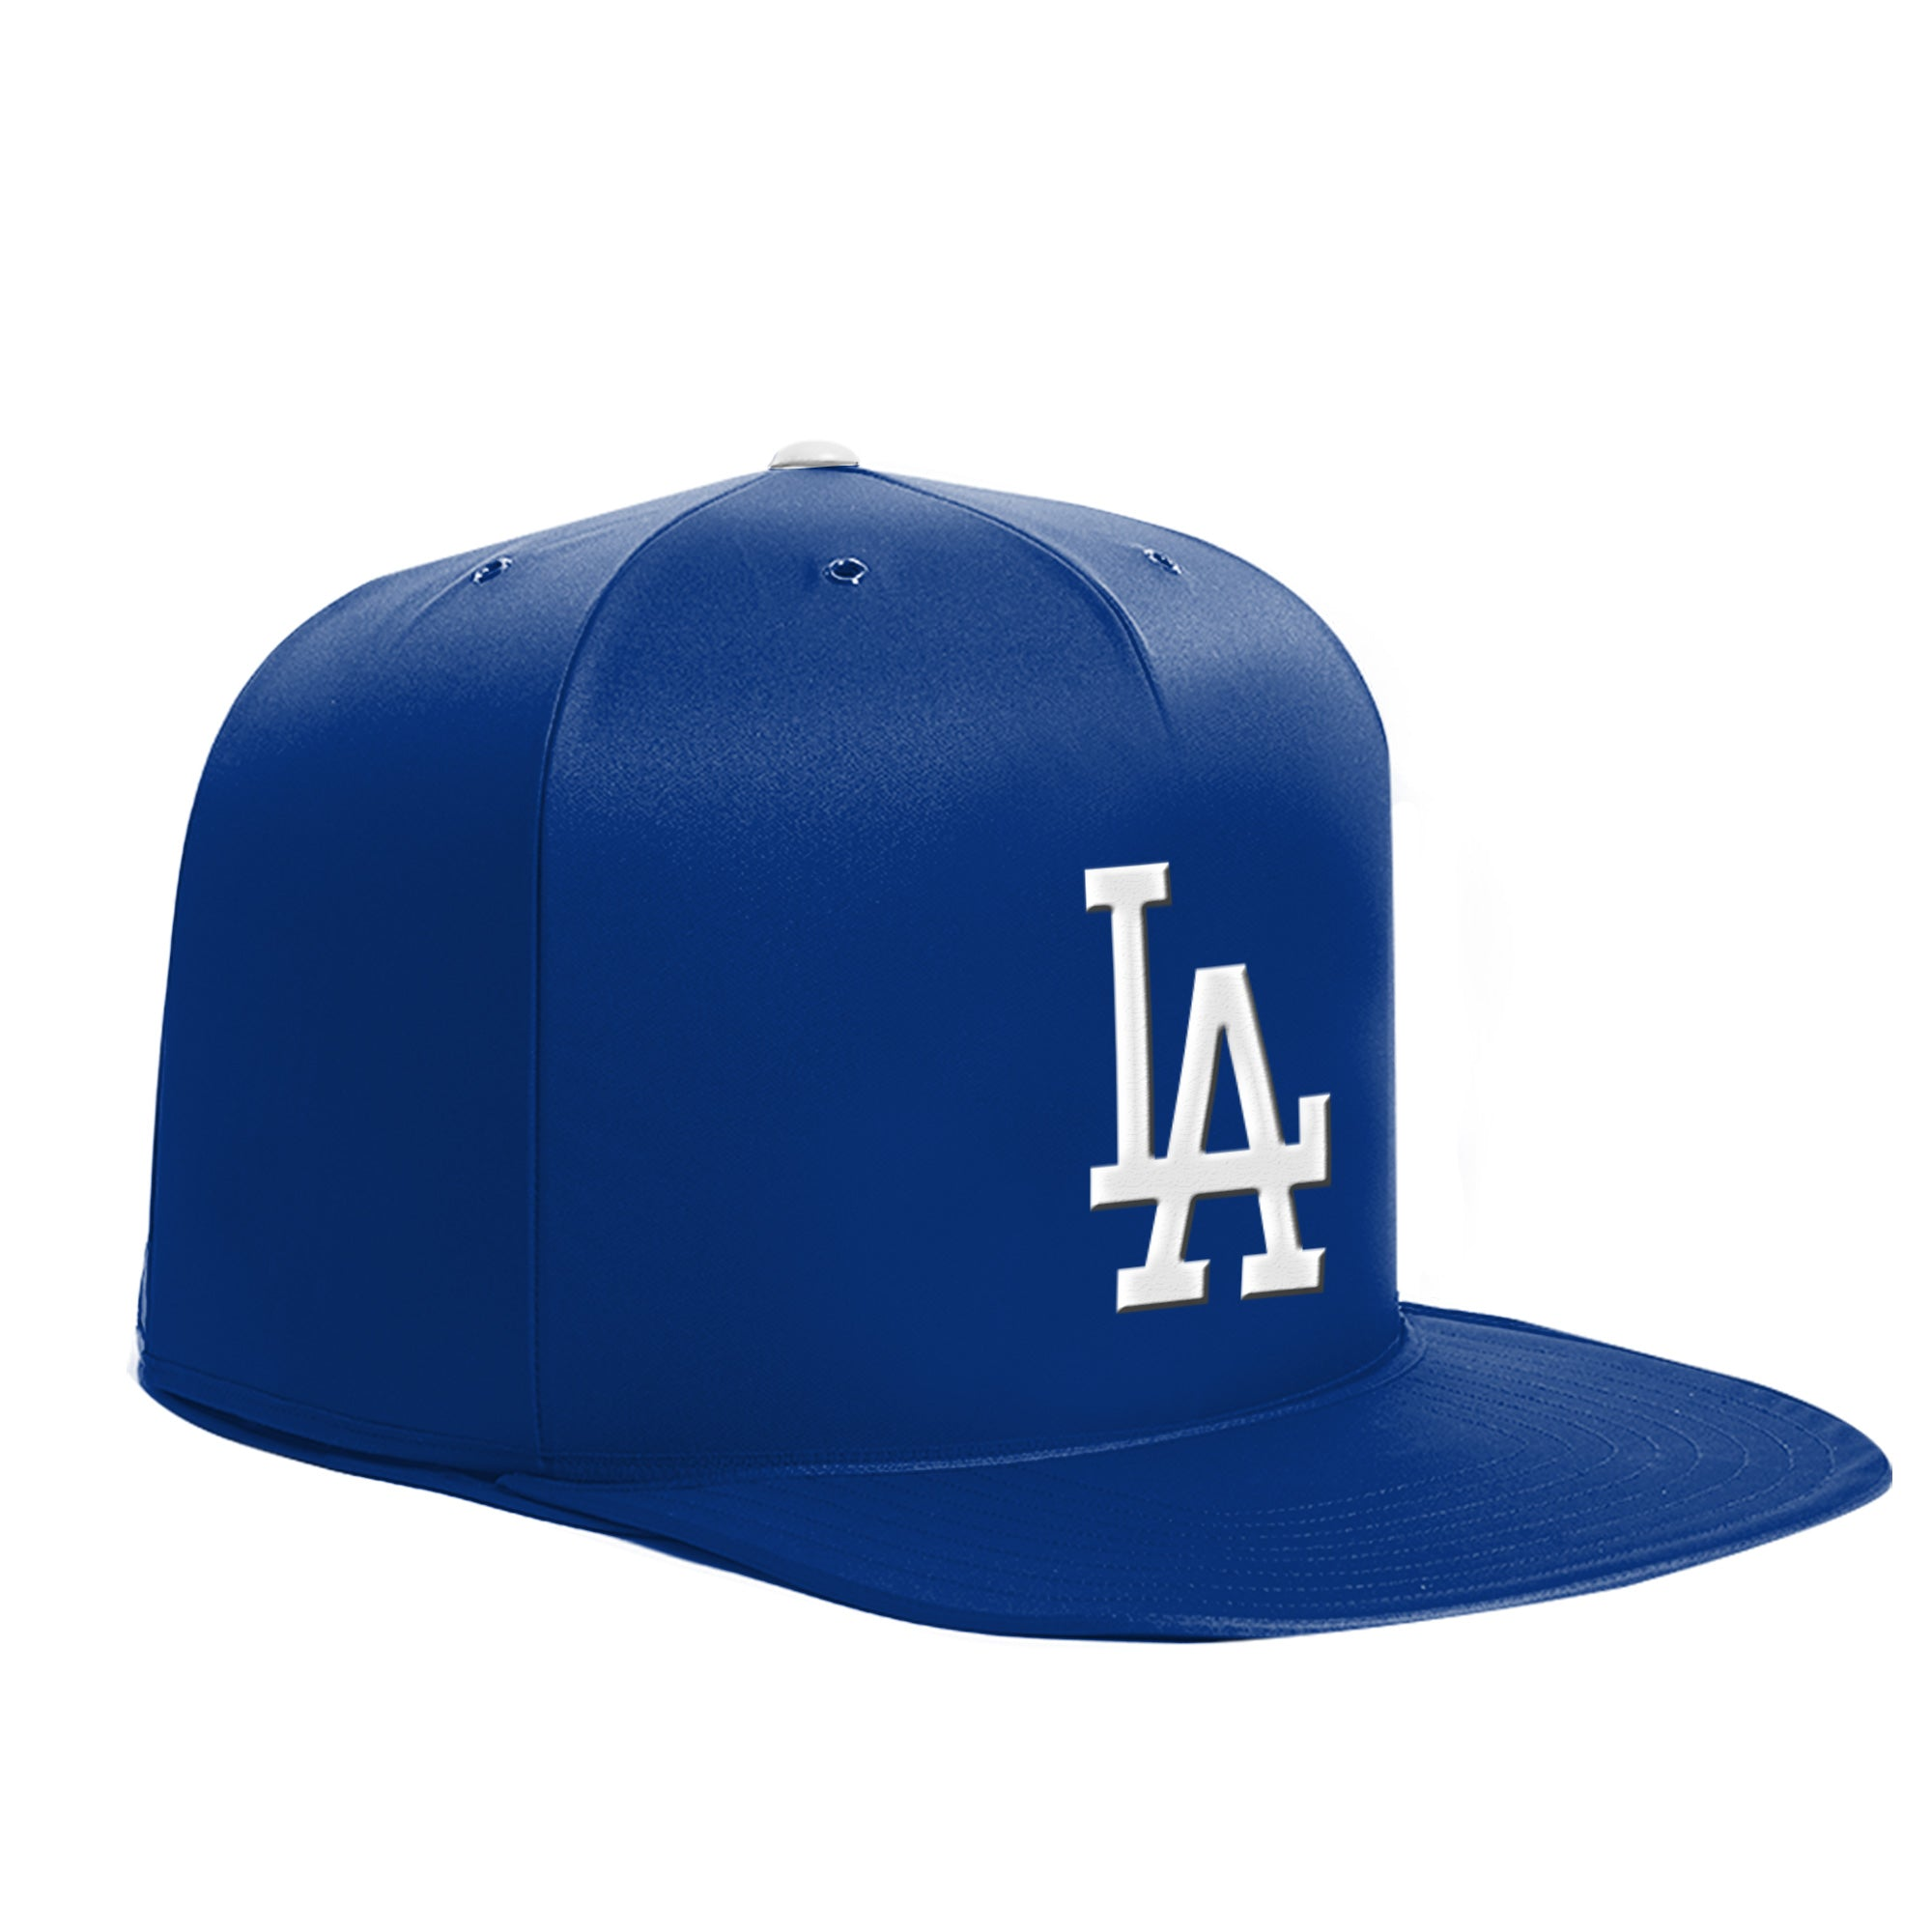 Nap Cap - Los Angeles Dodgers - Pet Bed